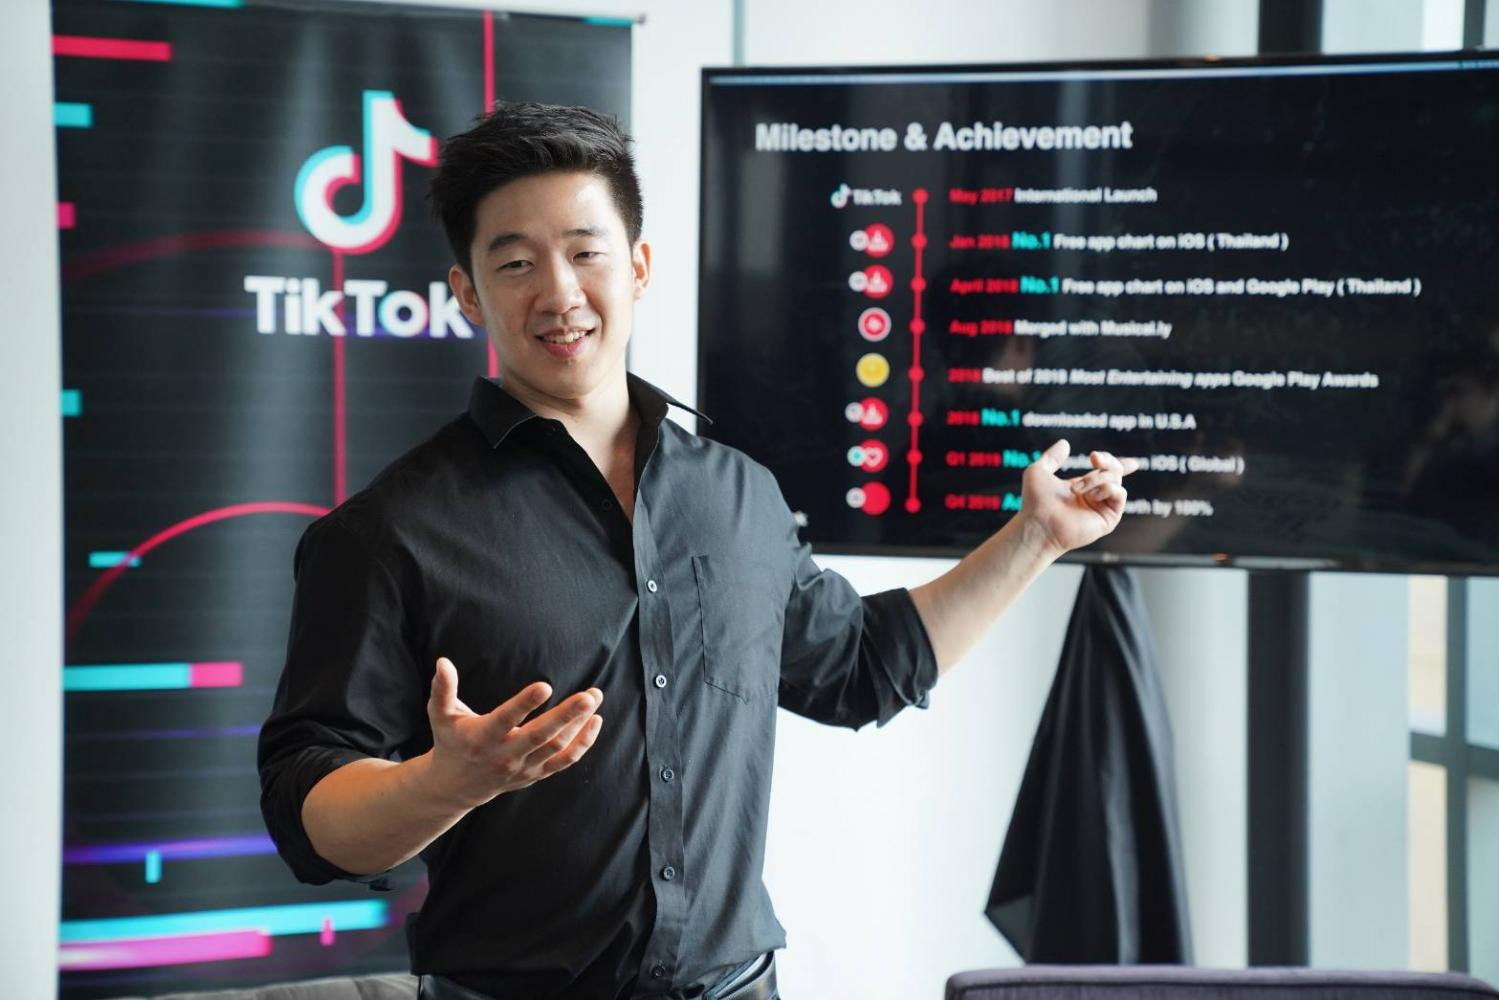 Mr Pakorn says Thailand, Vietnam and Indonesia are the key markets in Asean for TikTok.